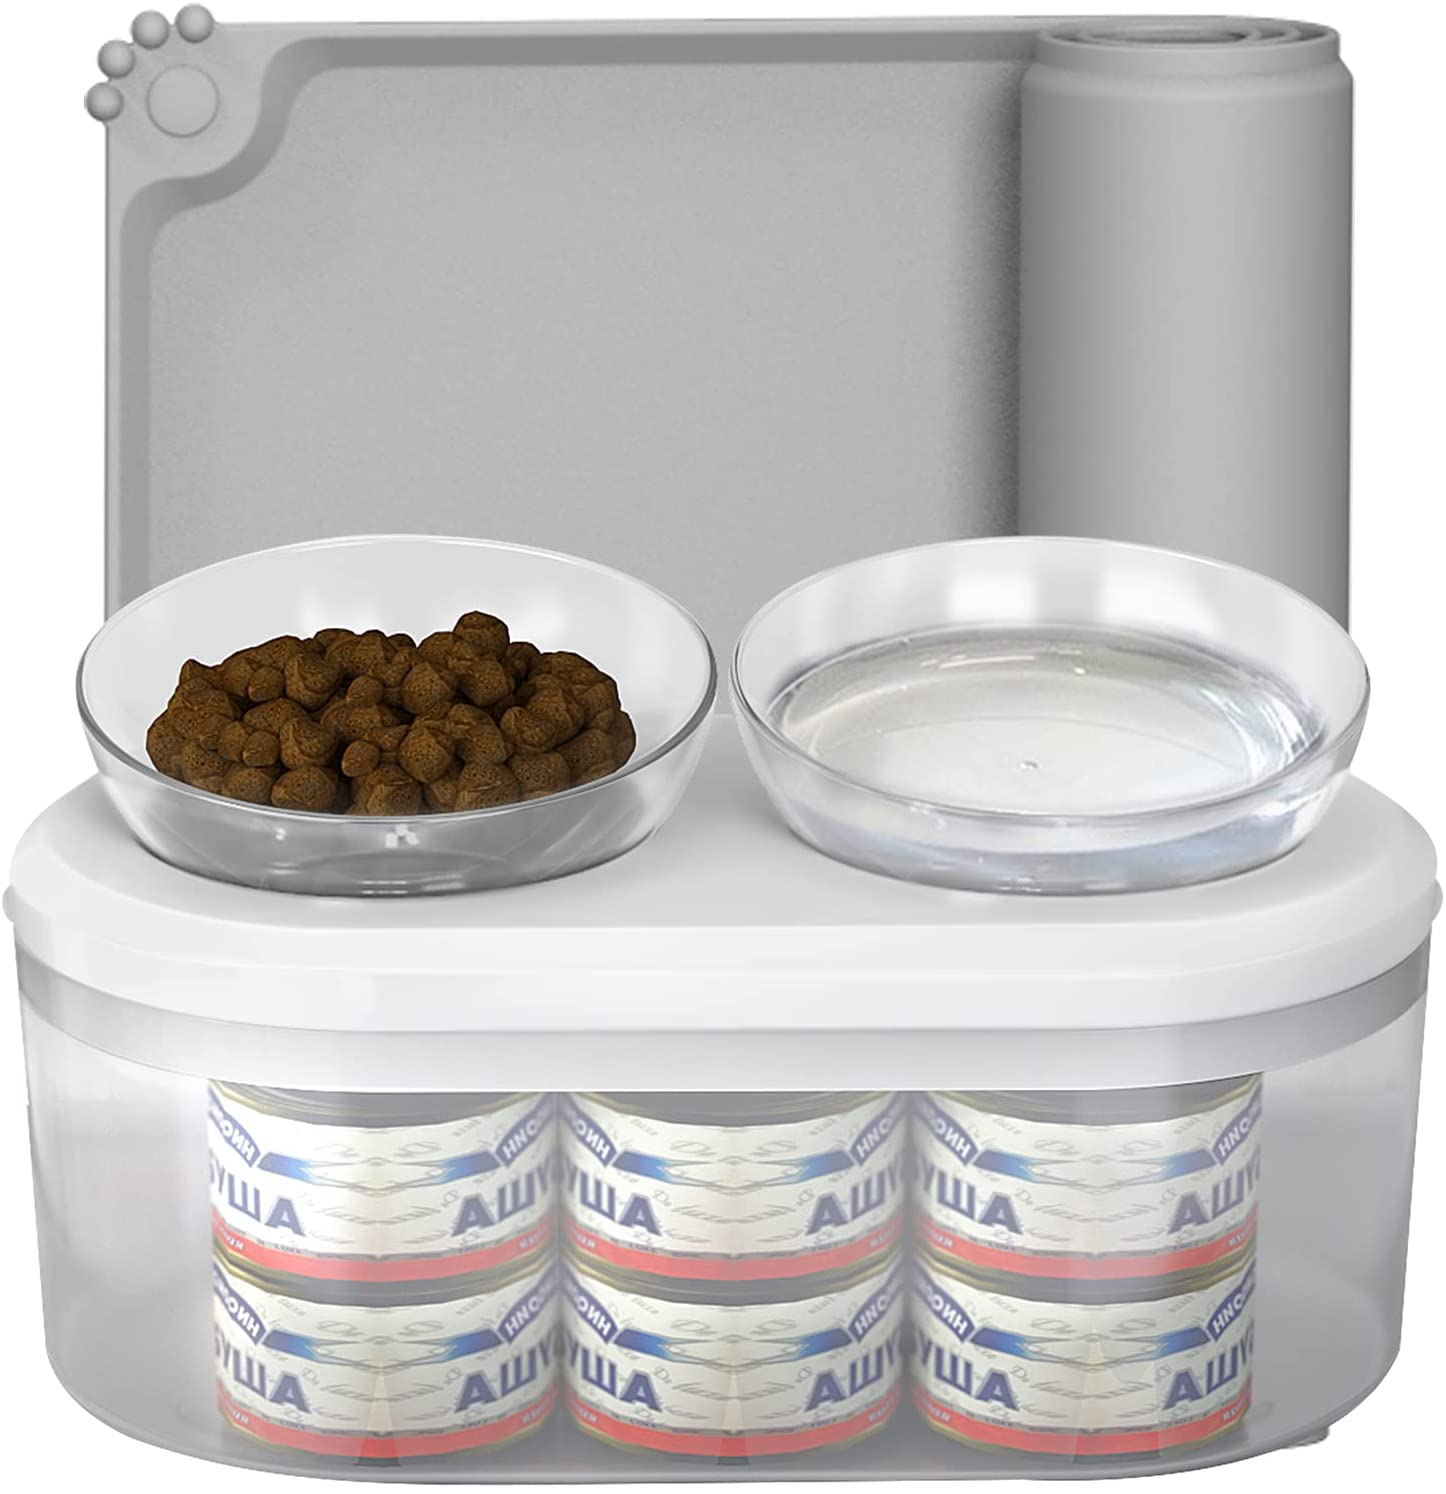 Cat Food Bowls /Cat Water Bowl 15° Tilted Cat Bowl Set with Food Container and Non Slip Waterproof Mat for Indoor Cats, 28 Ounces Bowls' Capacity…